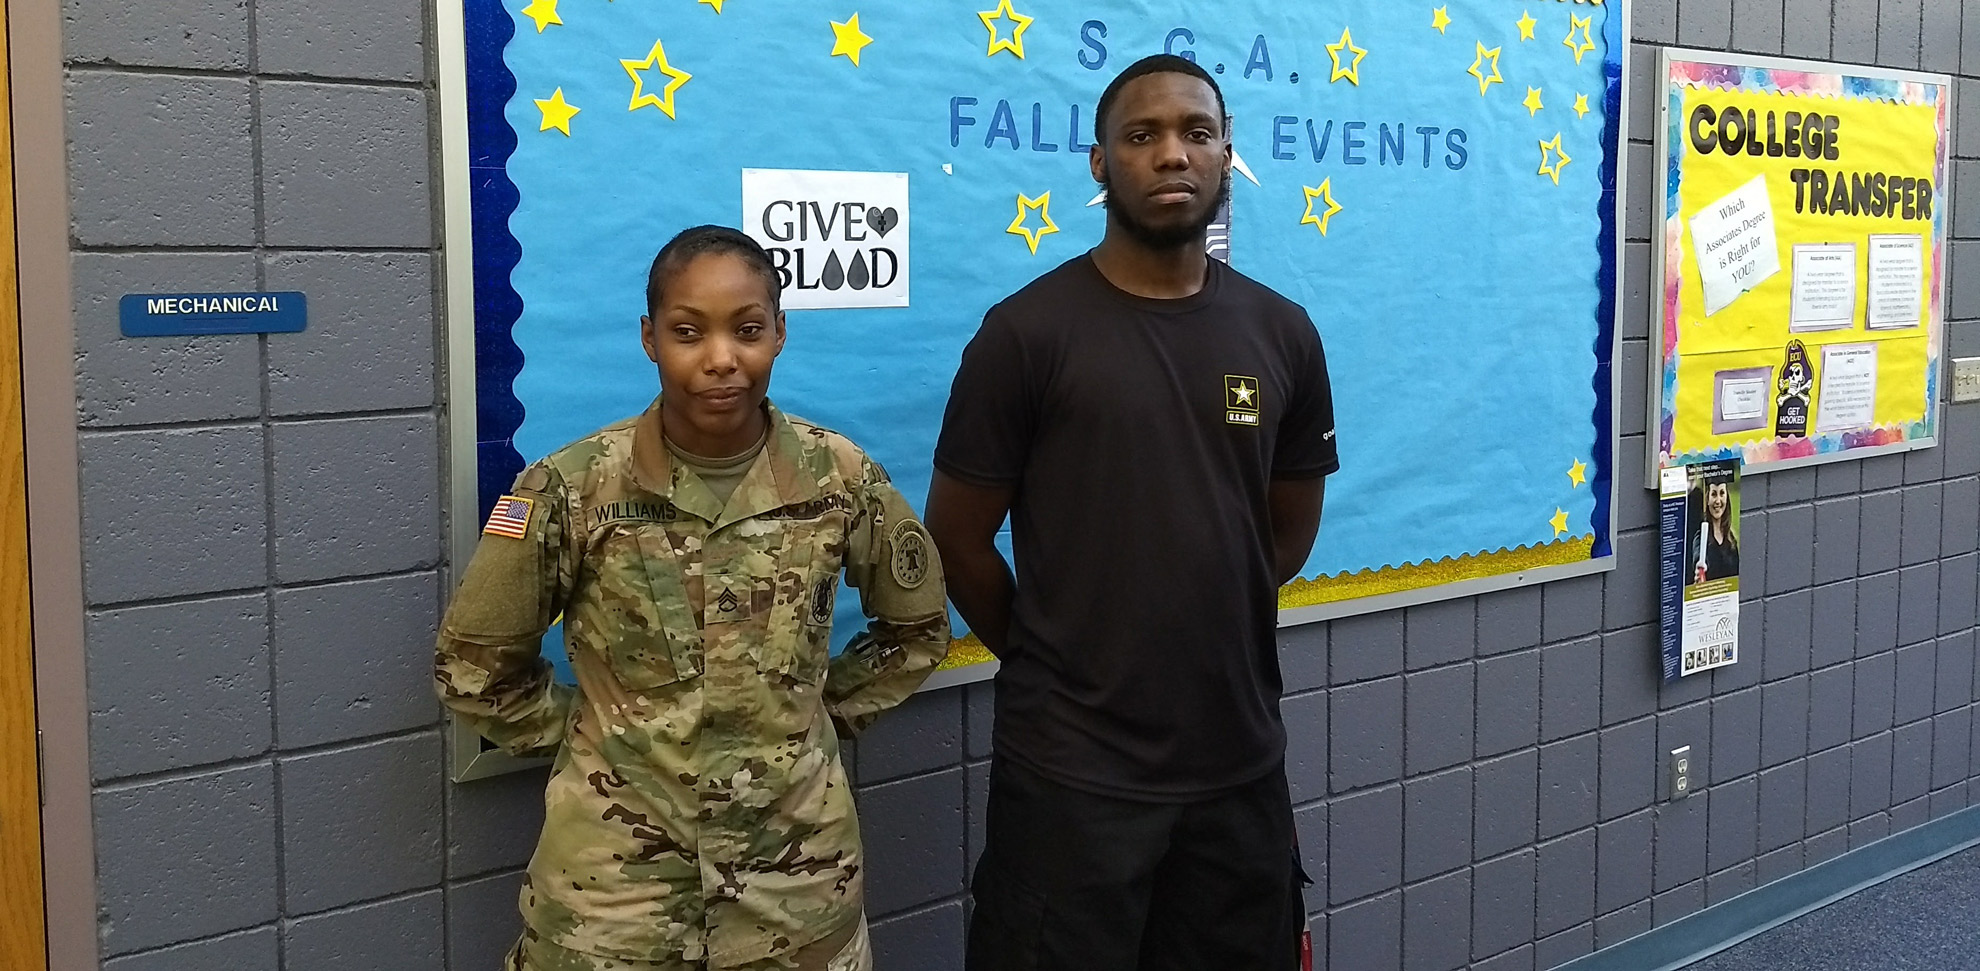 Sgt. Danielle Williams (left) with Pvt. Daniel Maultsby